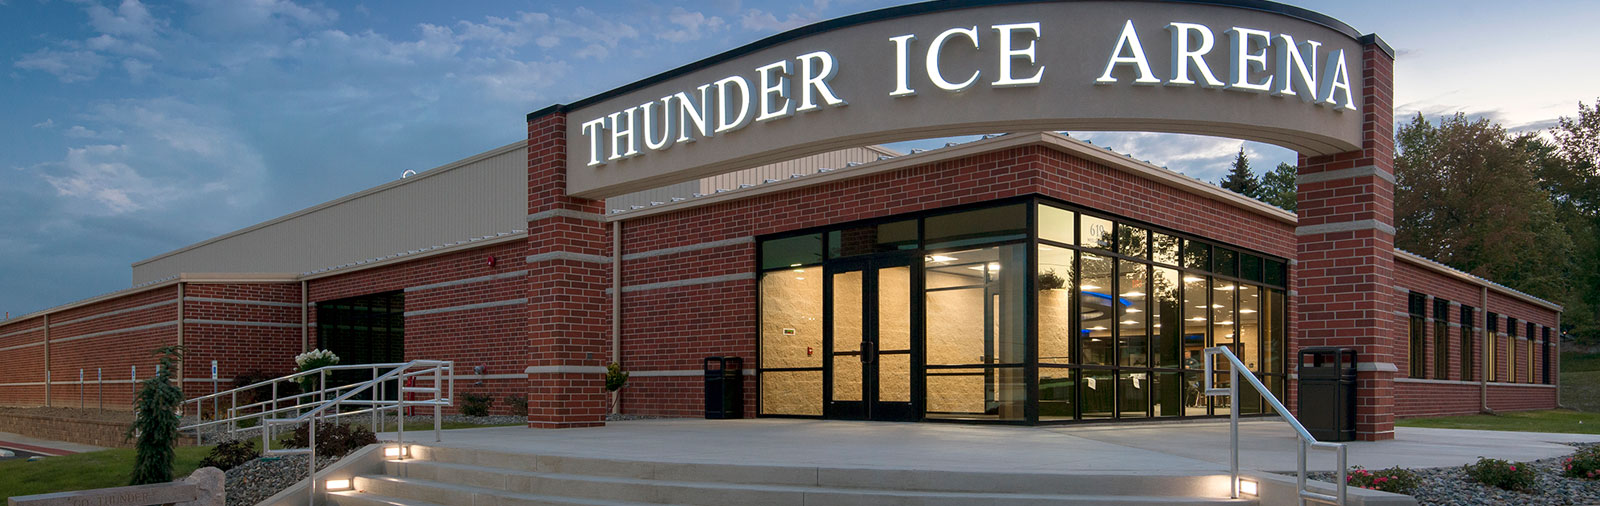 Thunder Ice Arena